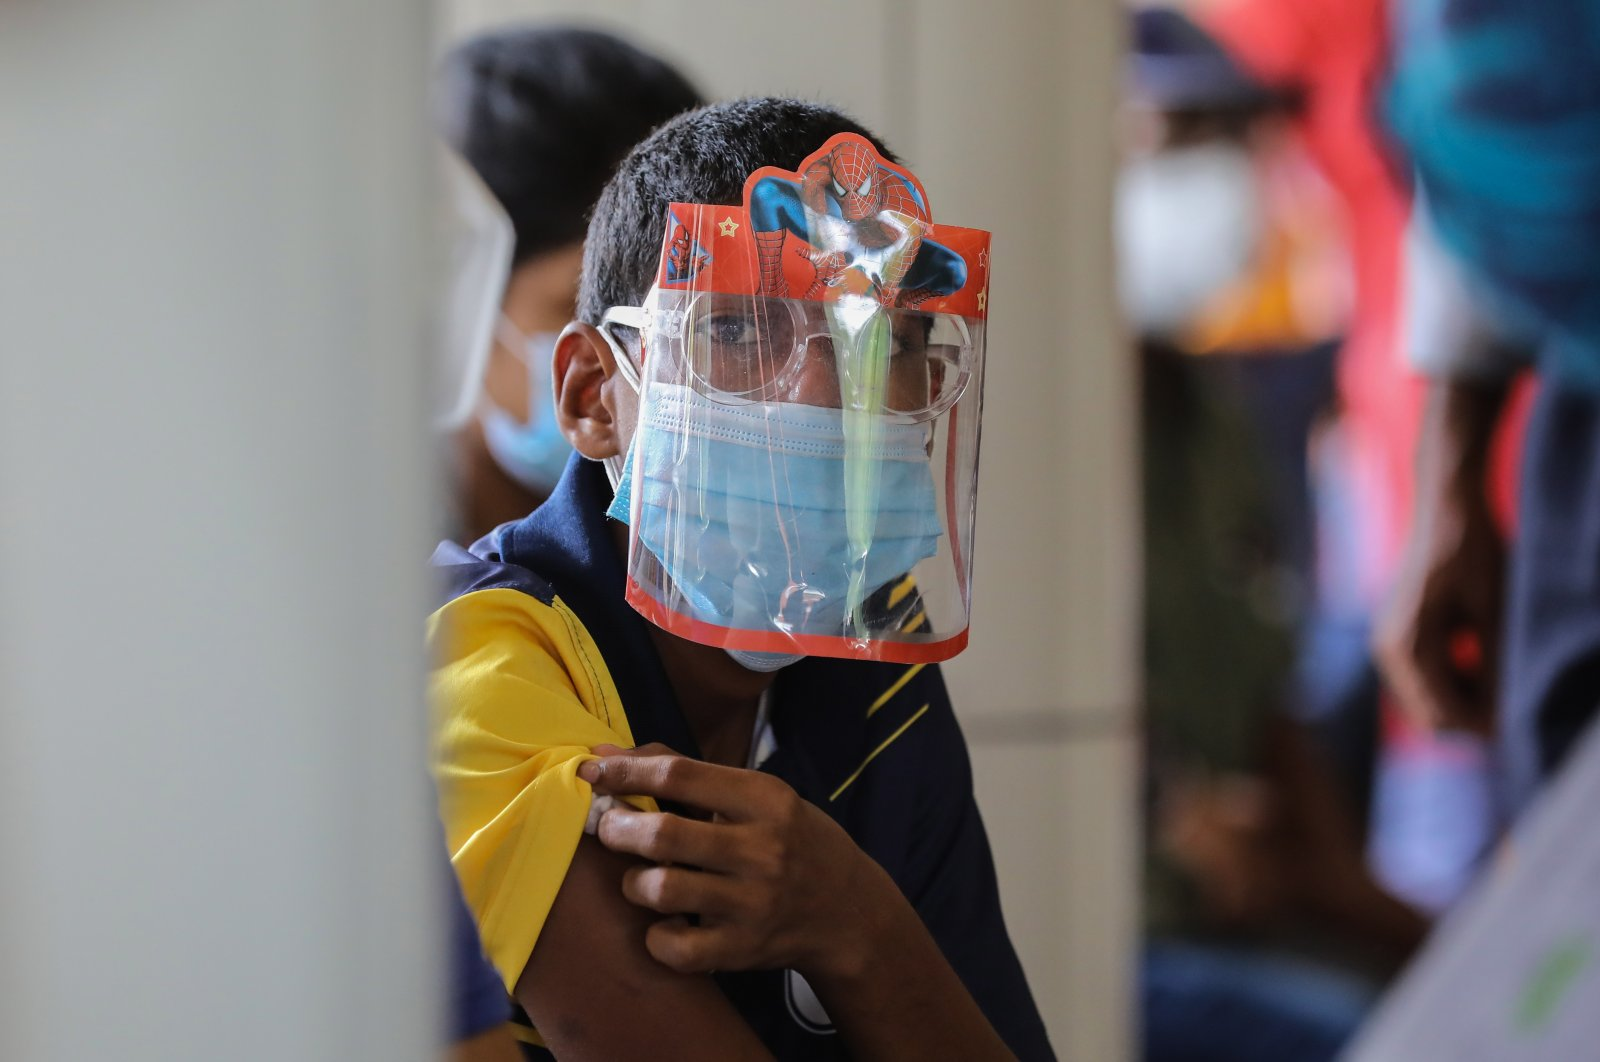 A Sri Lankan boy with a face shield with his hero receives his COVID-19 vaccine at a Hospital during an island-wide lockdown as a preventive measure against the spread of COVID-19, Colombo, Sri Lanka, Sept. 30, 2021. (EPA Photo)